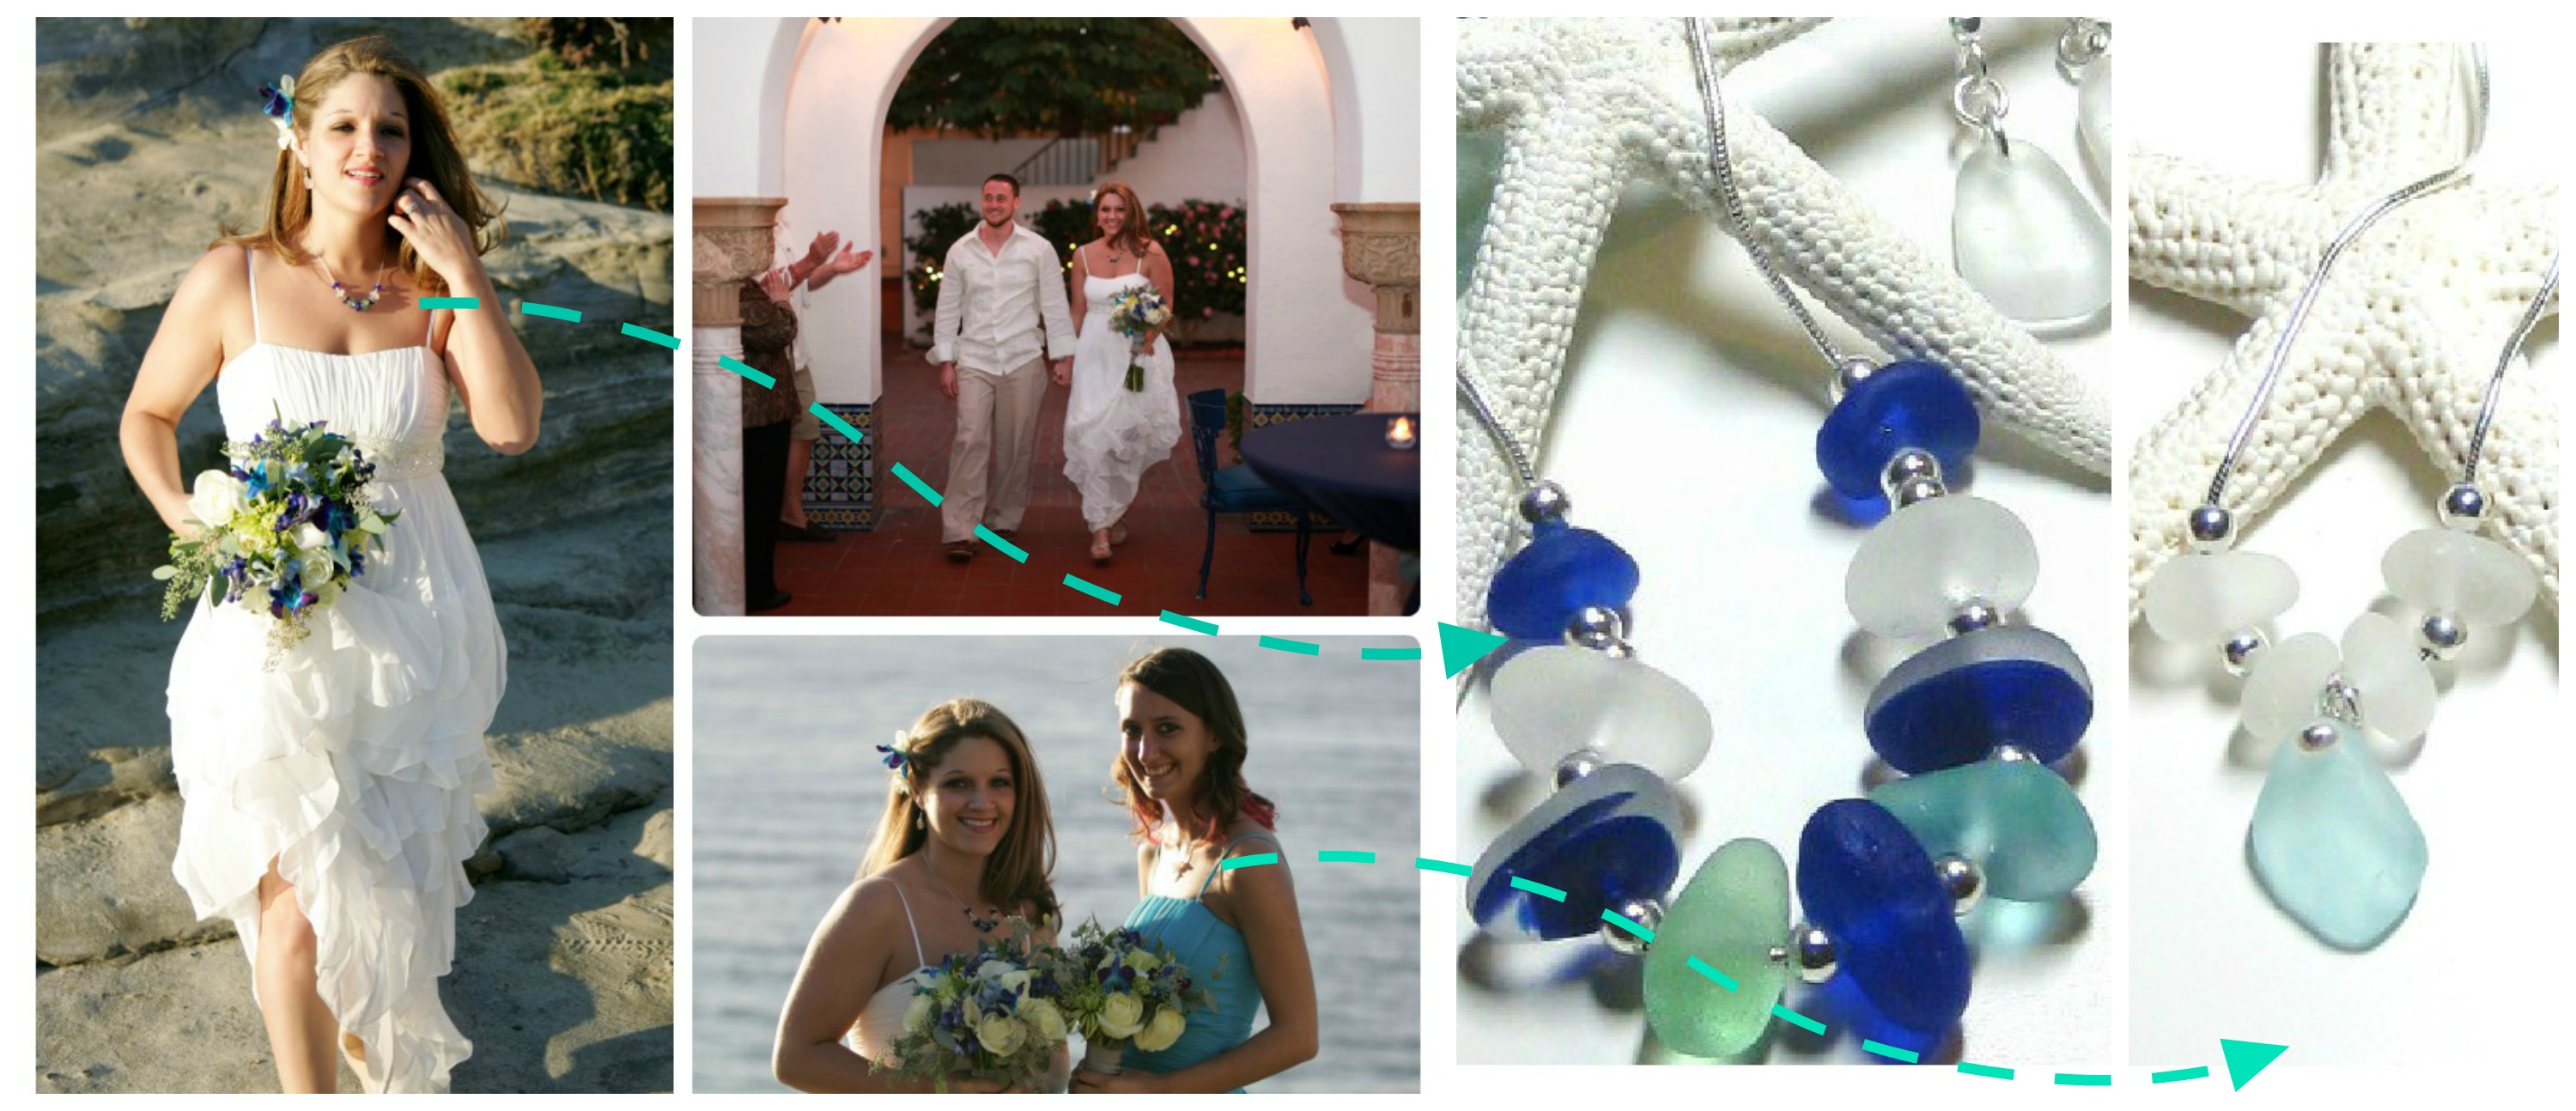 wedding-day-collage.jpg